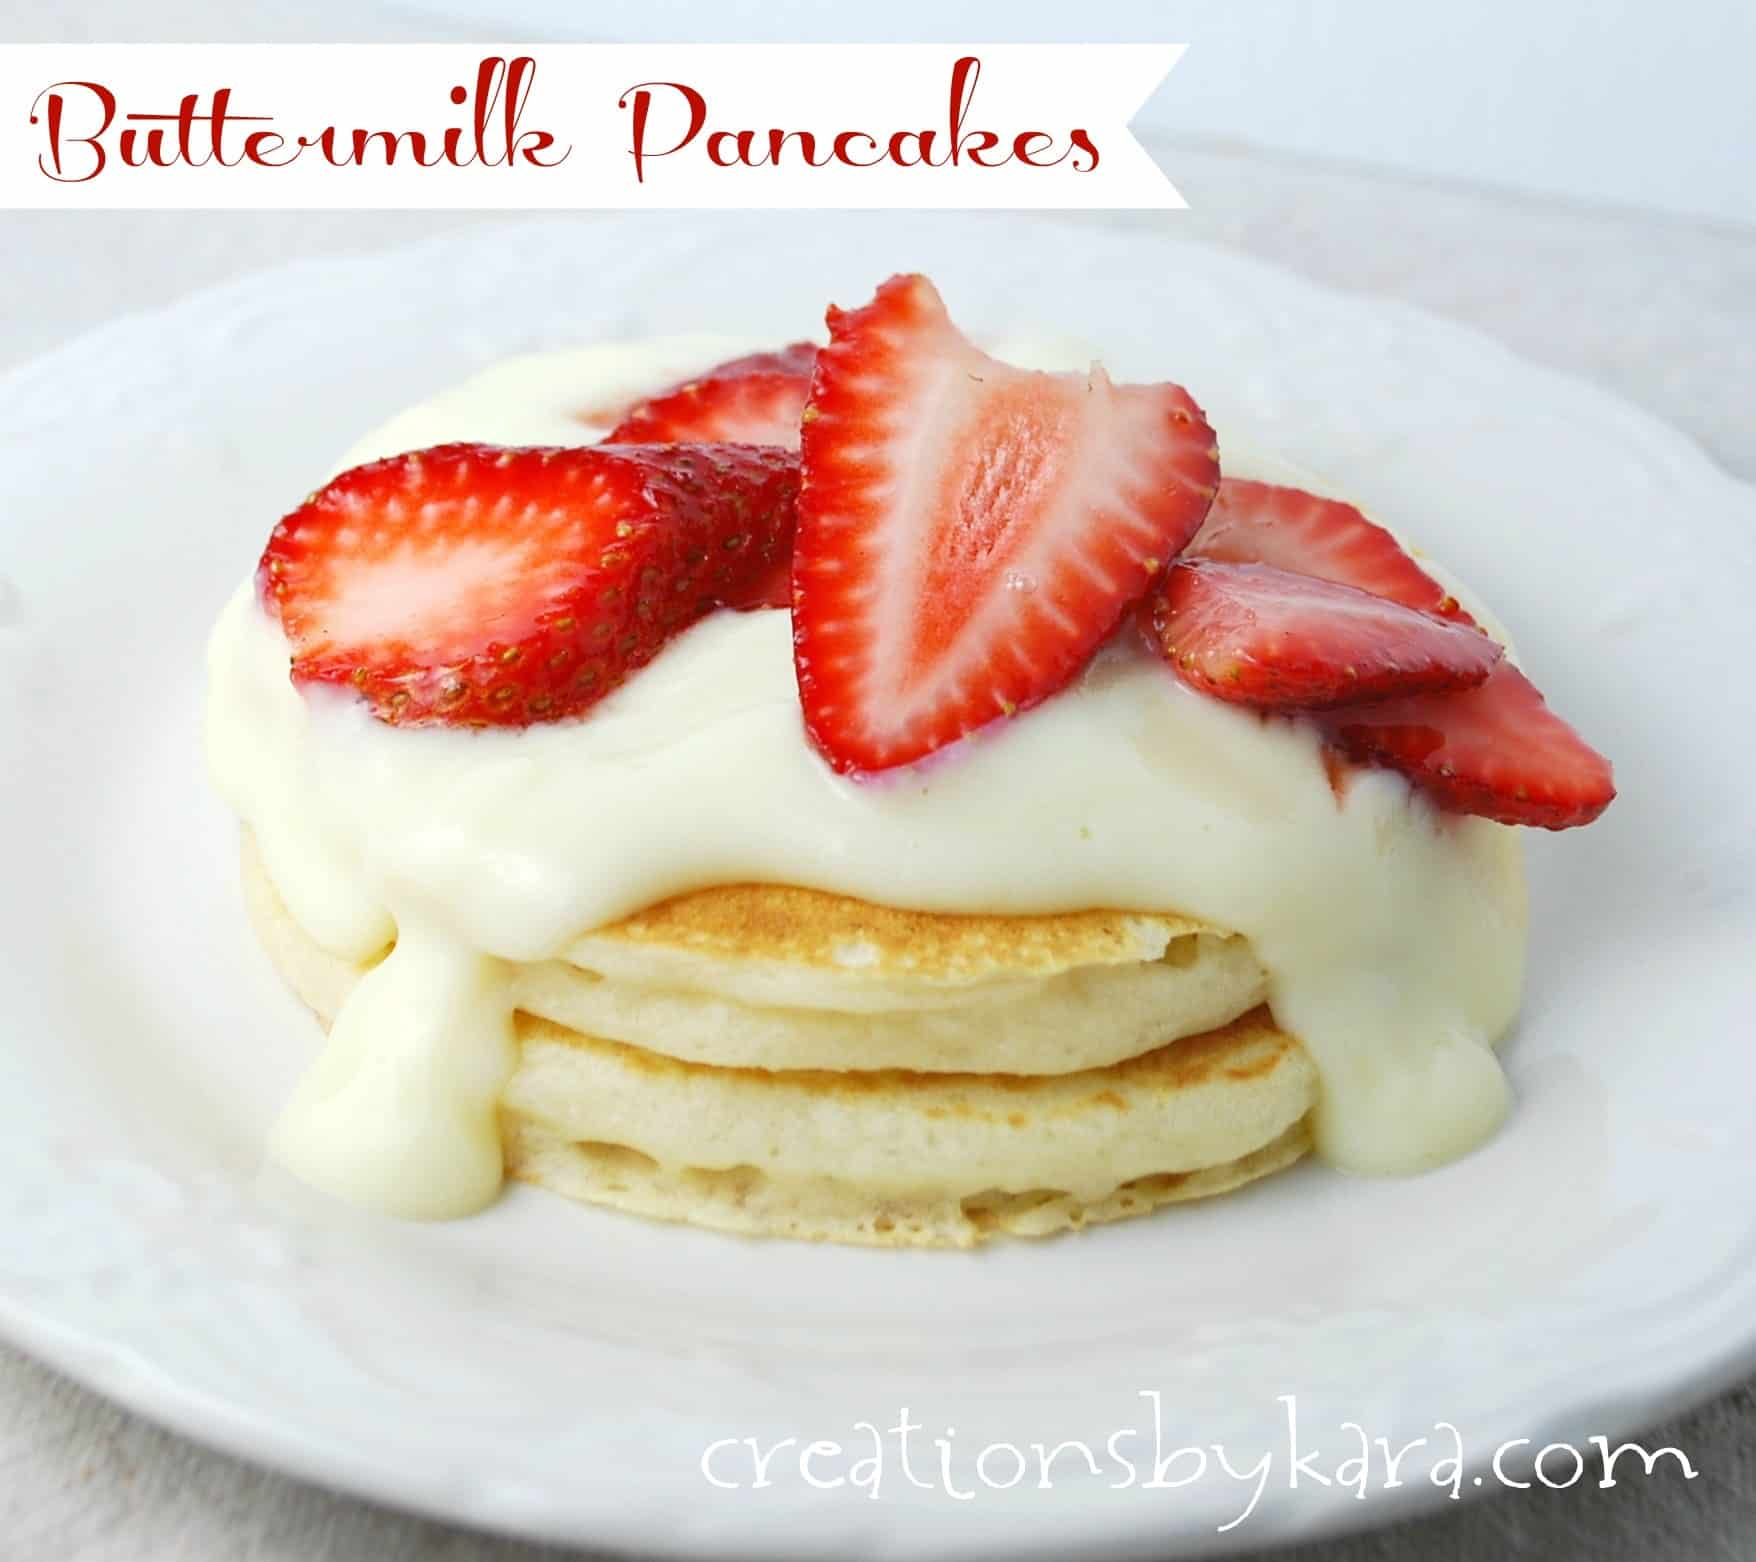 buttermilk-pancakes-recipe